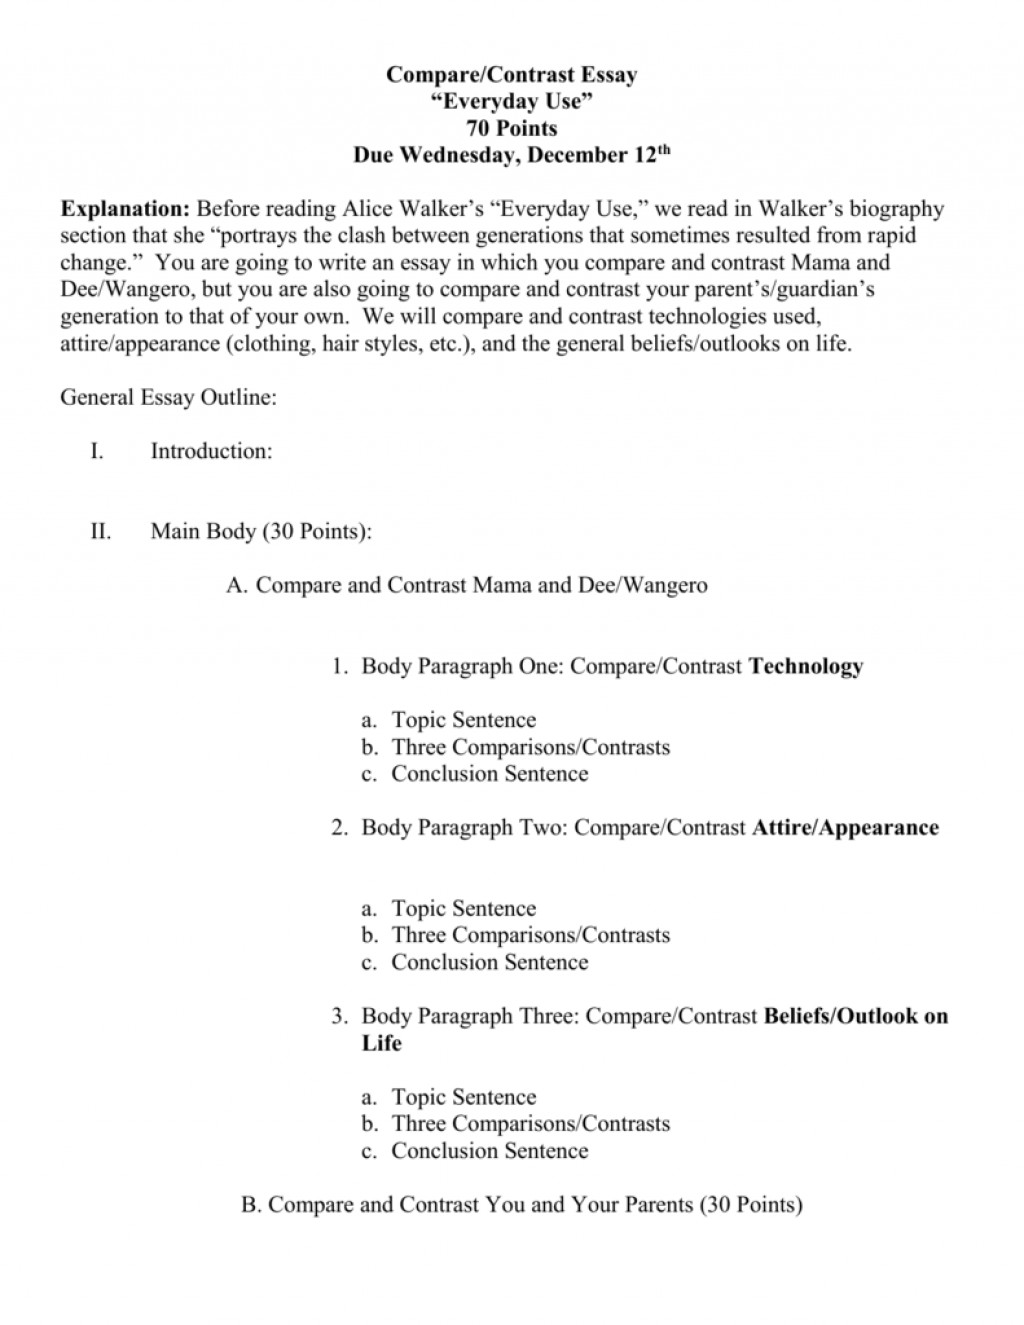 023 Comparison And Contrast Essay Outline 007806300 2 Impressive Compare 5th Grade High School Template Large